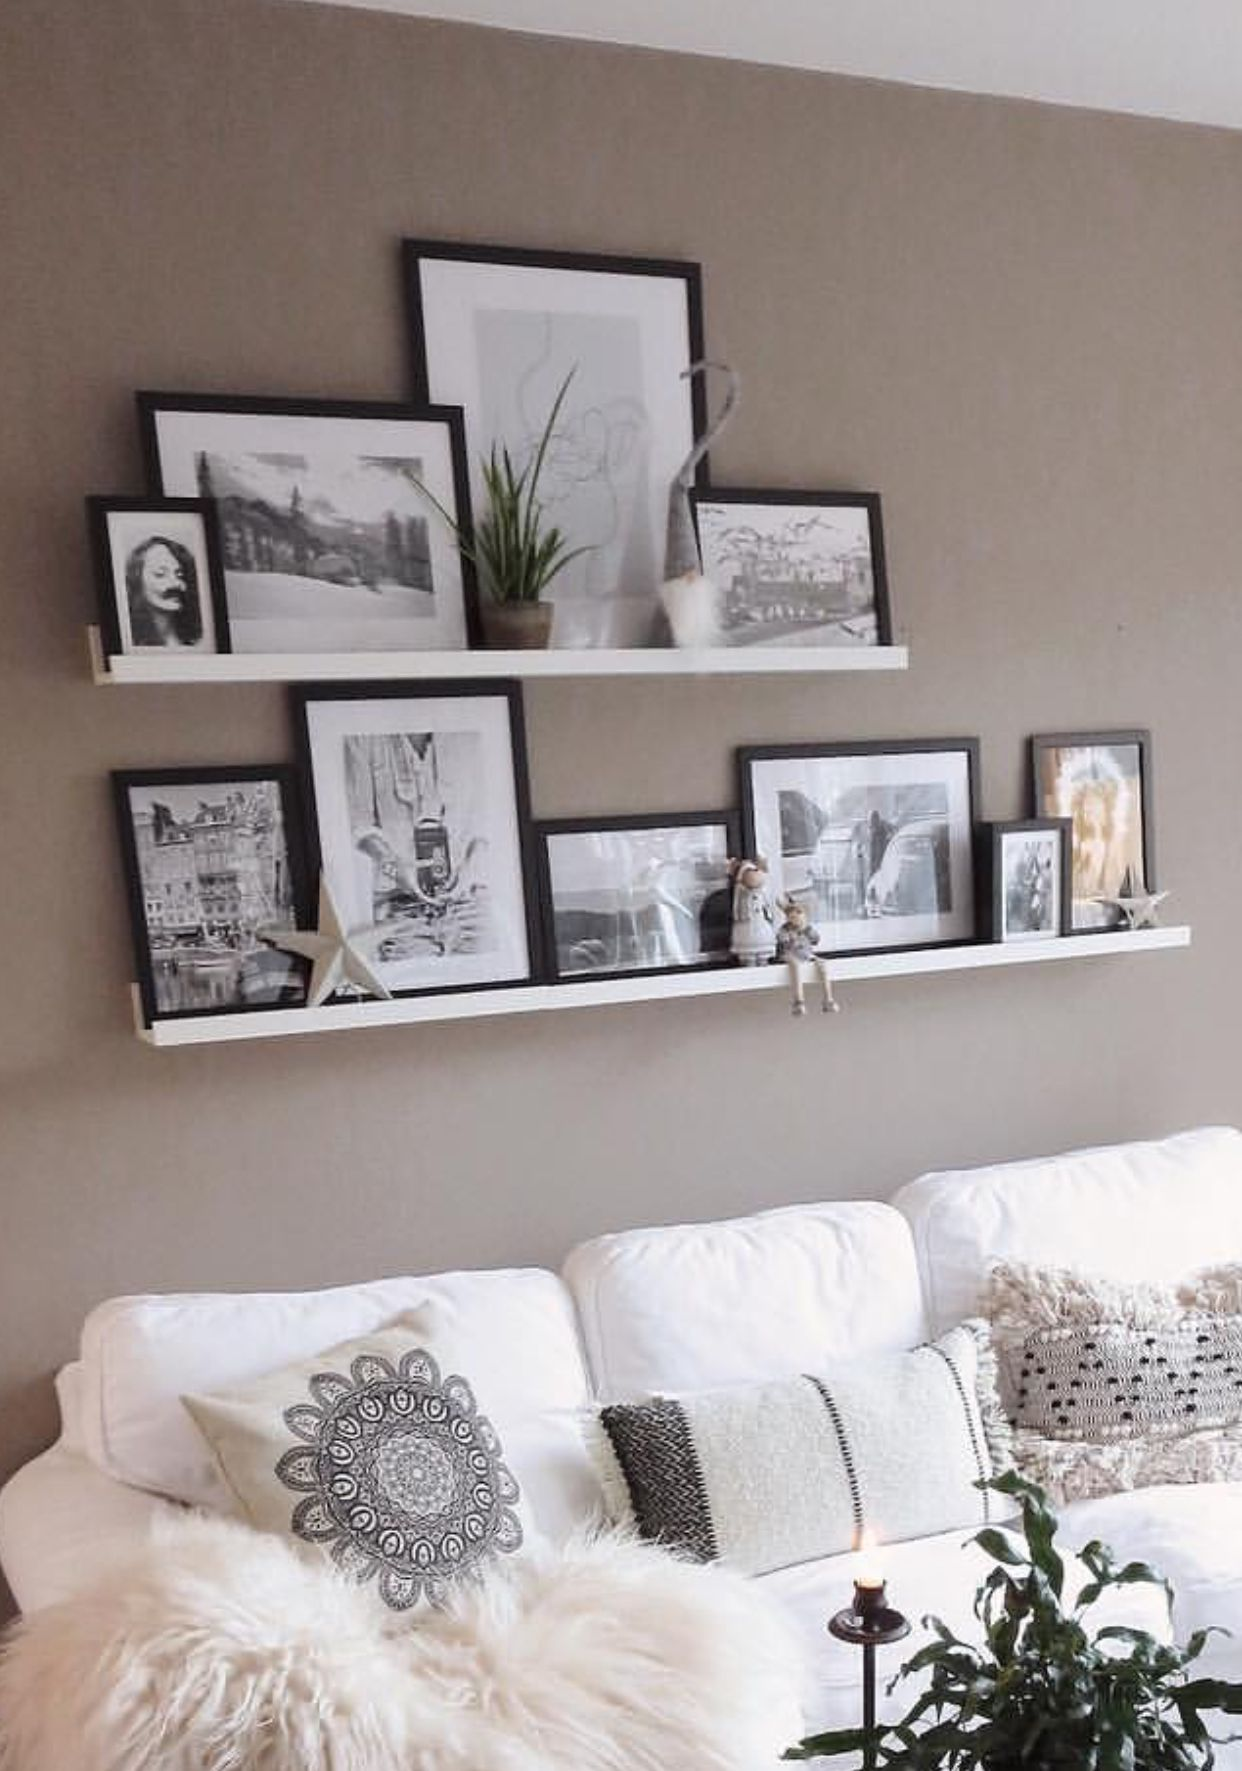 Absolutely Love These White Floating Shelves For Pictures Shelf Decor Living Room Wall Decor Living Room Floating Shelves Living Room